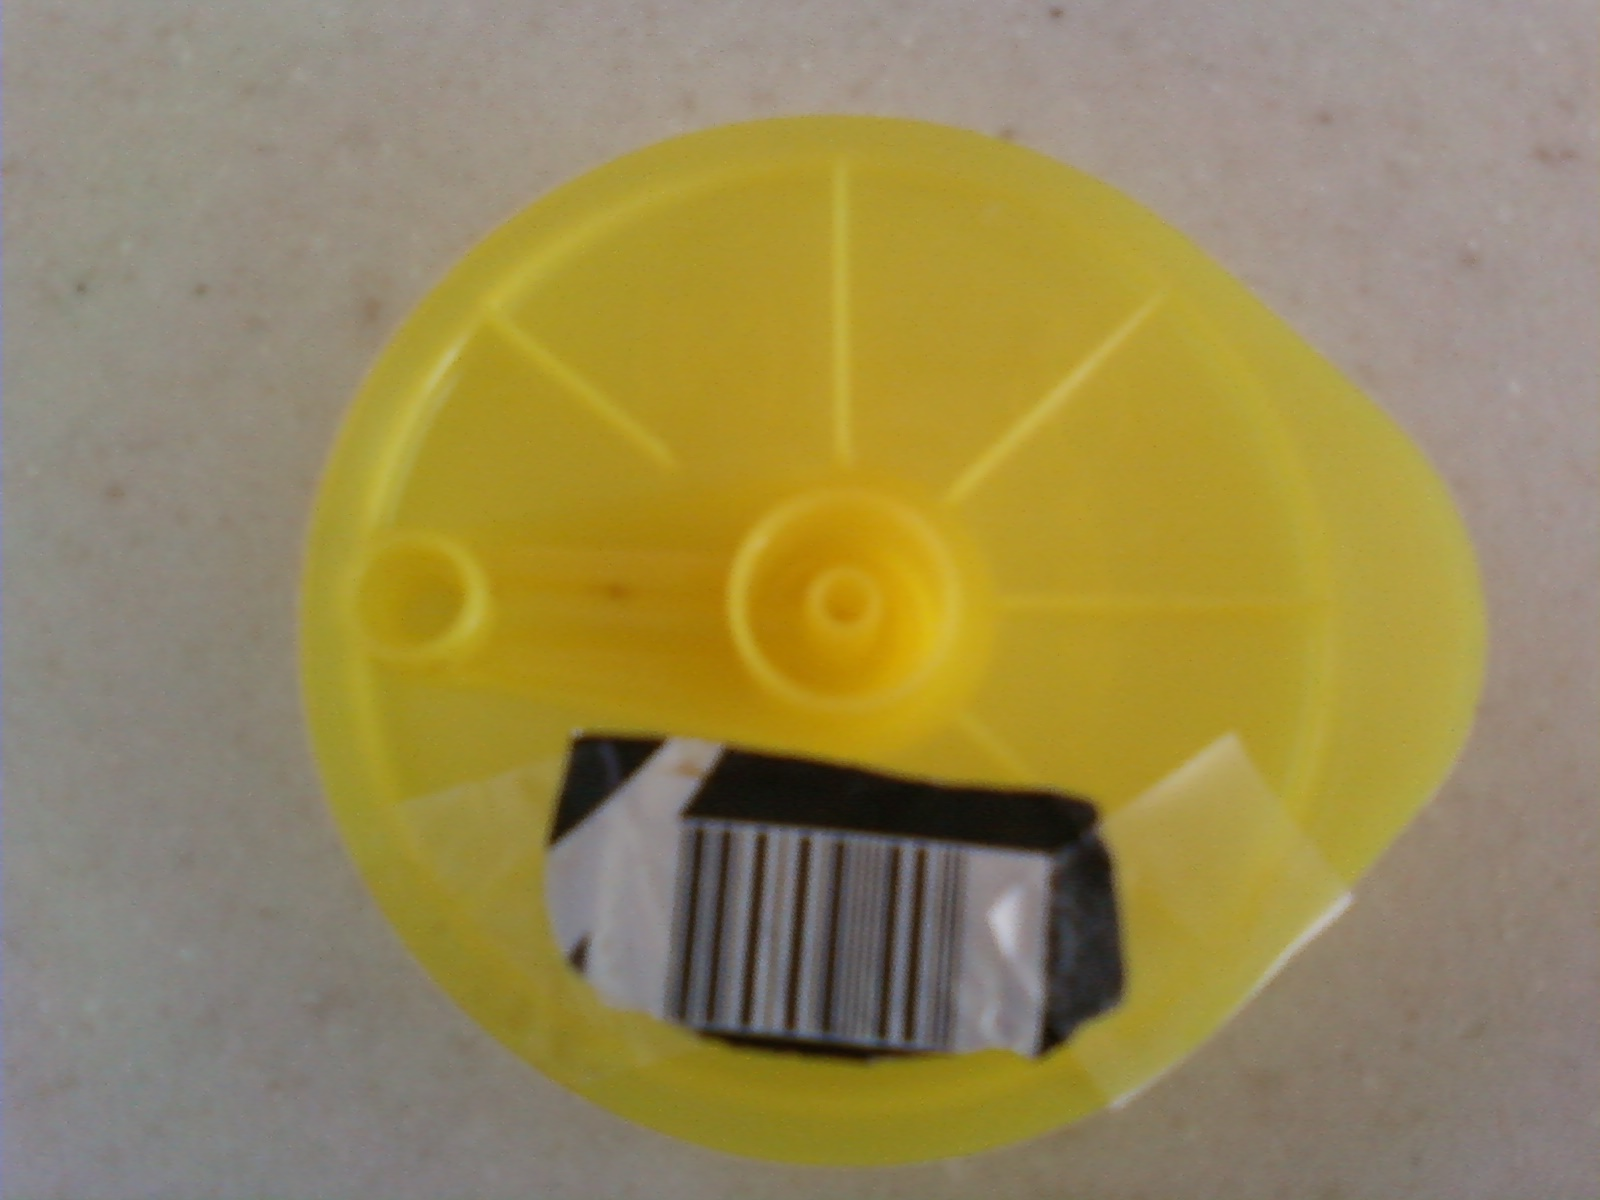 bosch tassimo cleaning disc instructions